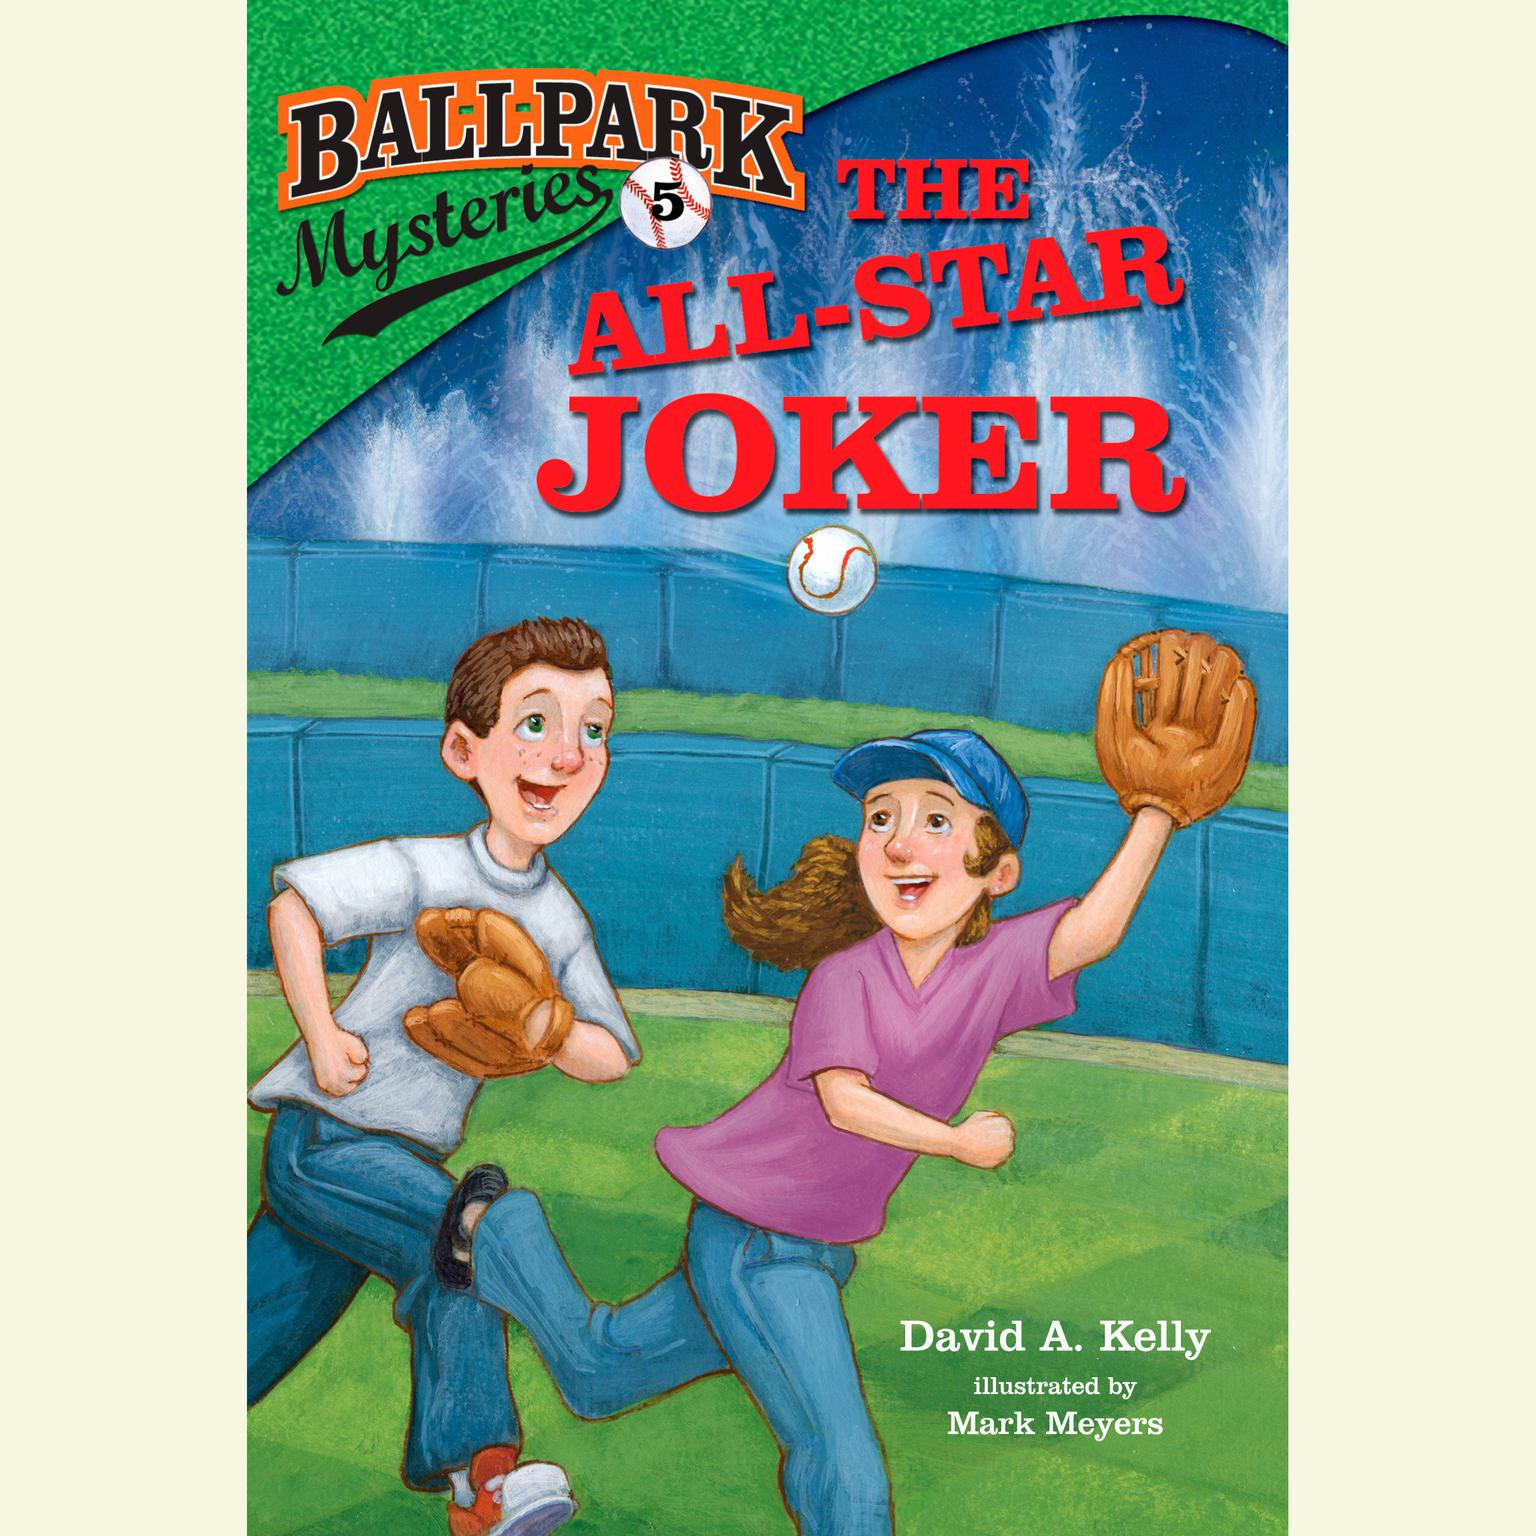 Printable Ballpark Mysteries #5: The All-Star Joker Audiobook Cover Art